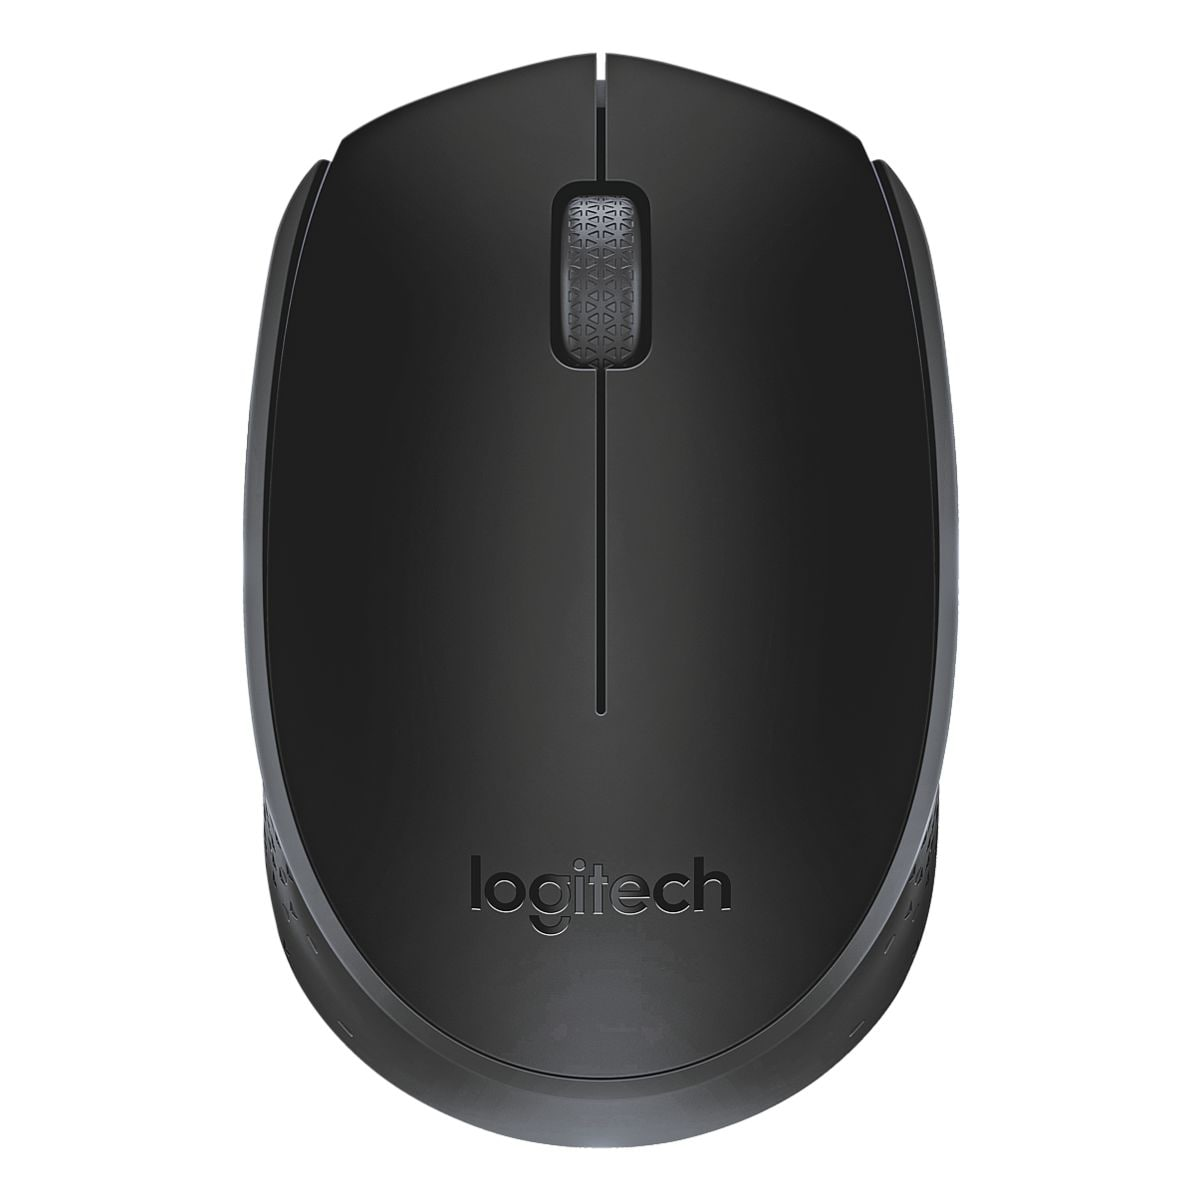 logitech kabellose maus b170 bei otto office g nstig kaufen. Black Bedroom Furniture Sets. Home Design Ideas